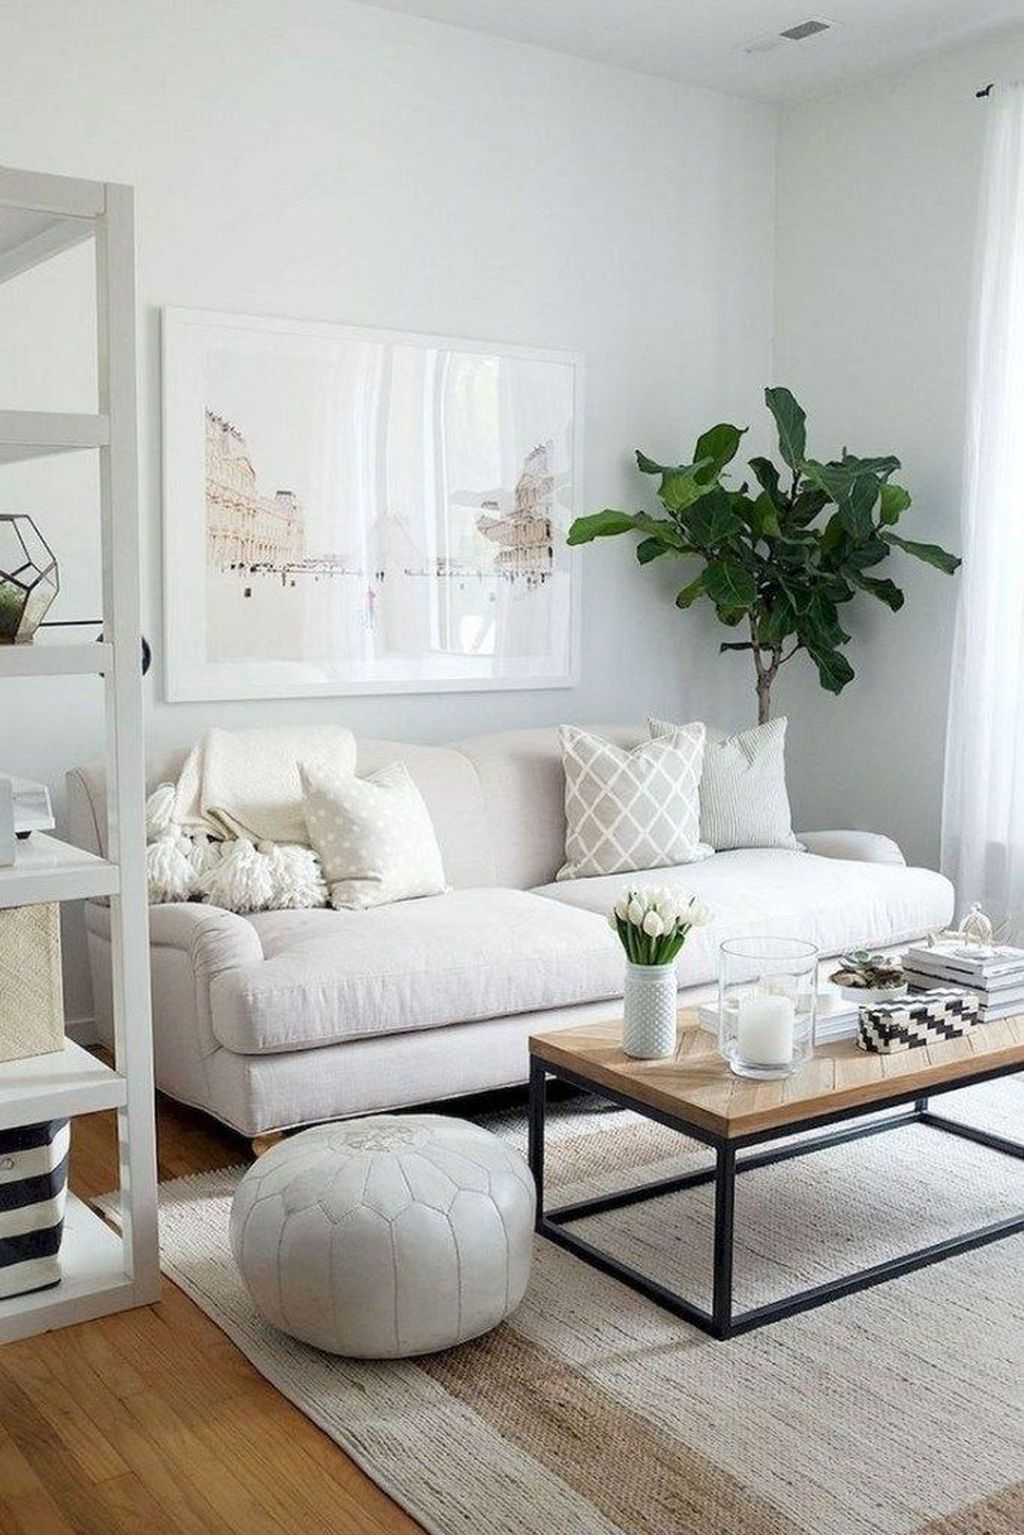 32 Fascinating Small Apartment Living Room Decor Ideas In